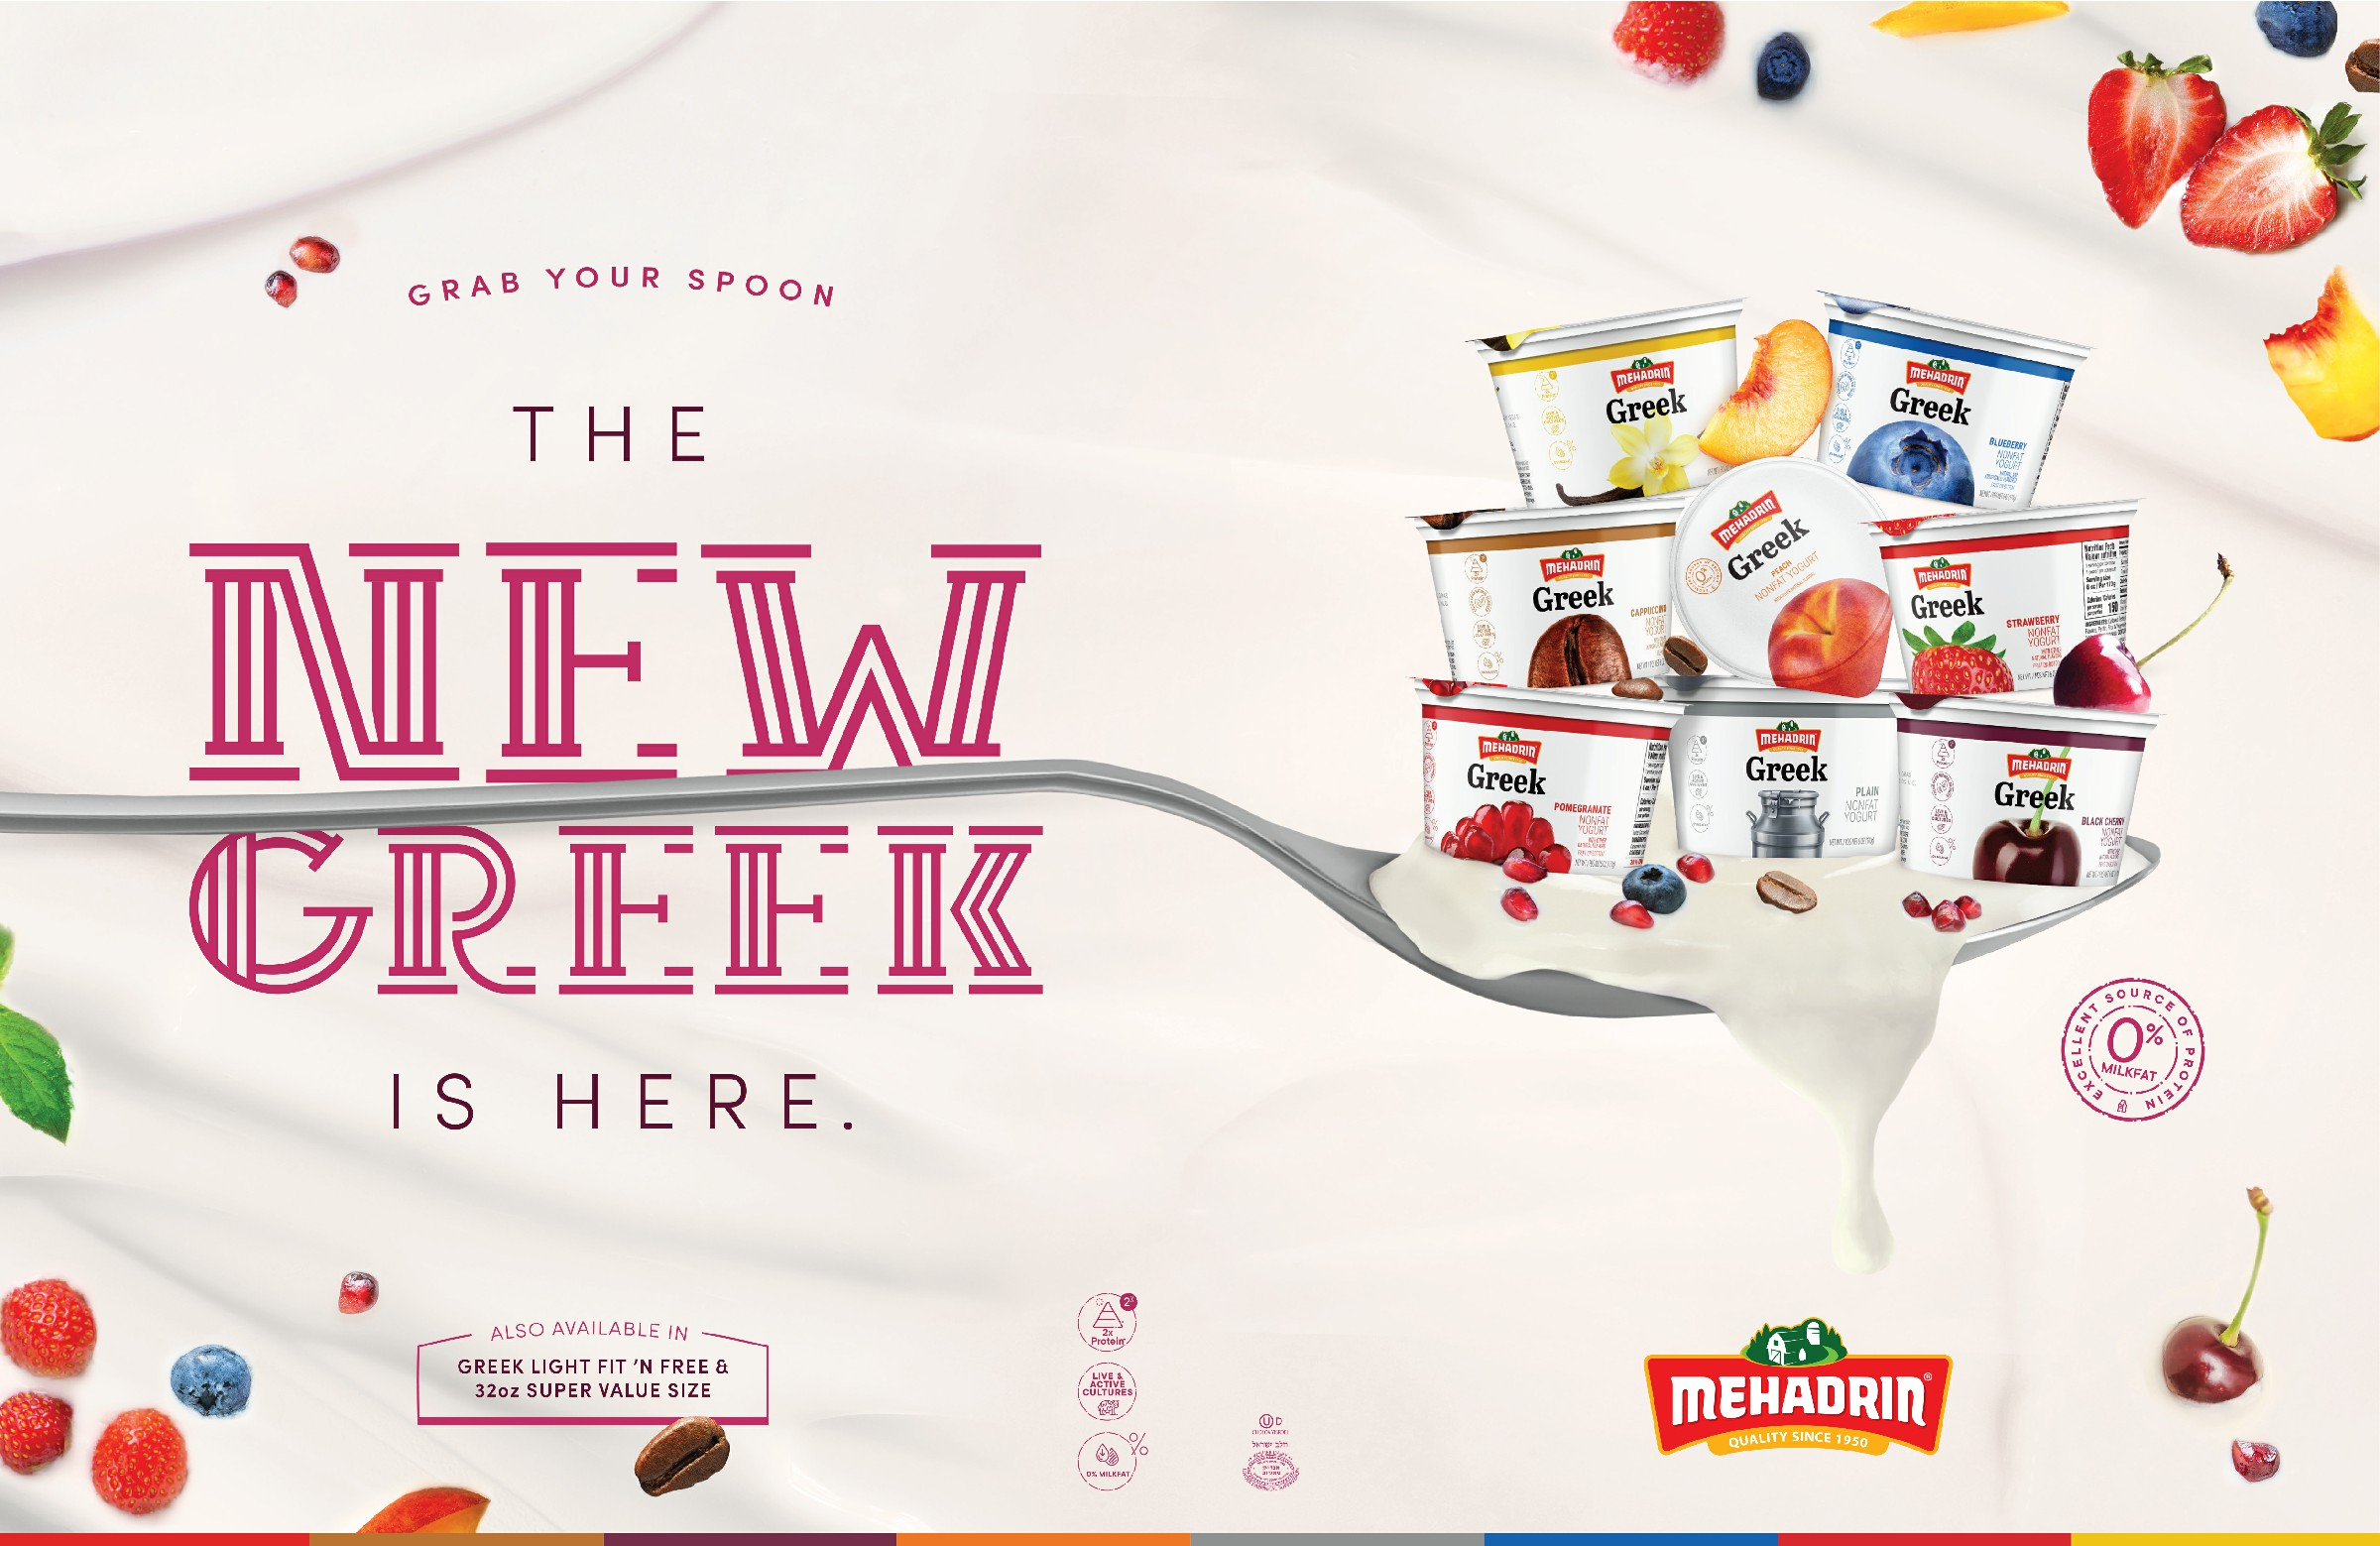 Mehadrin Greek_Reveal Ads-1